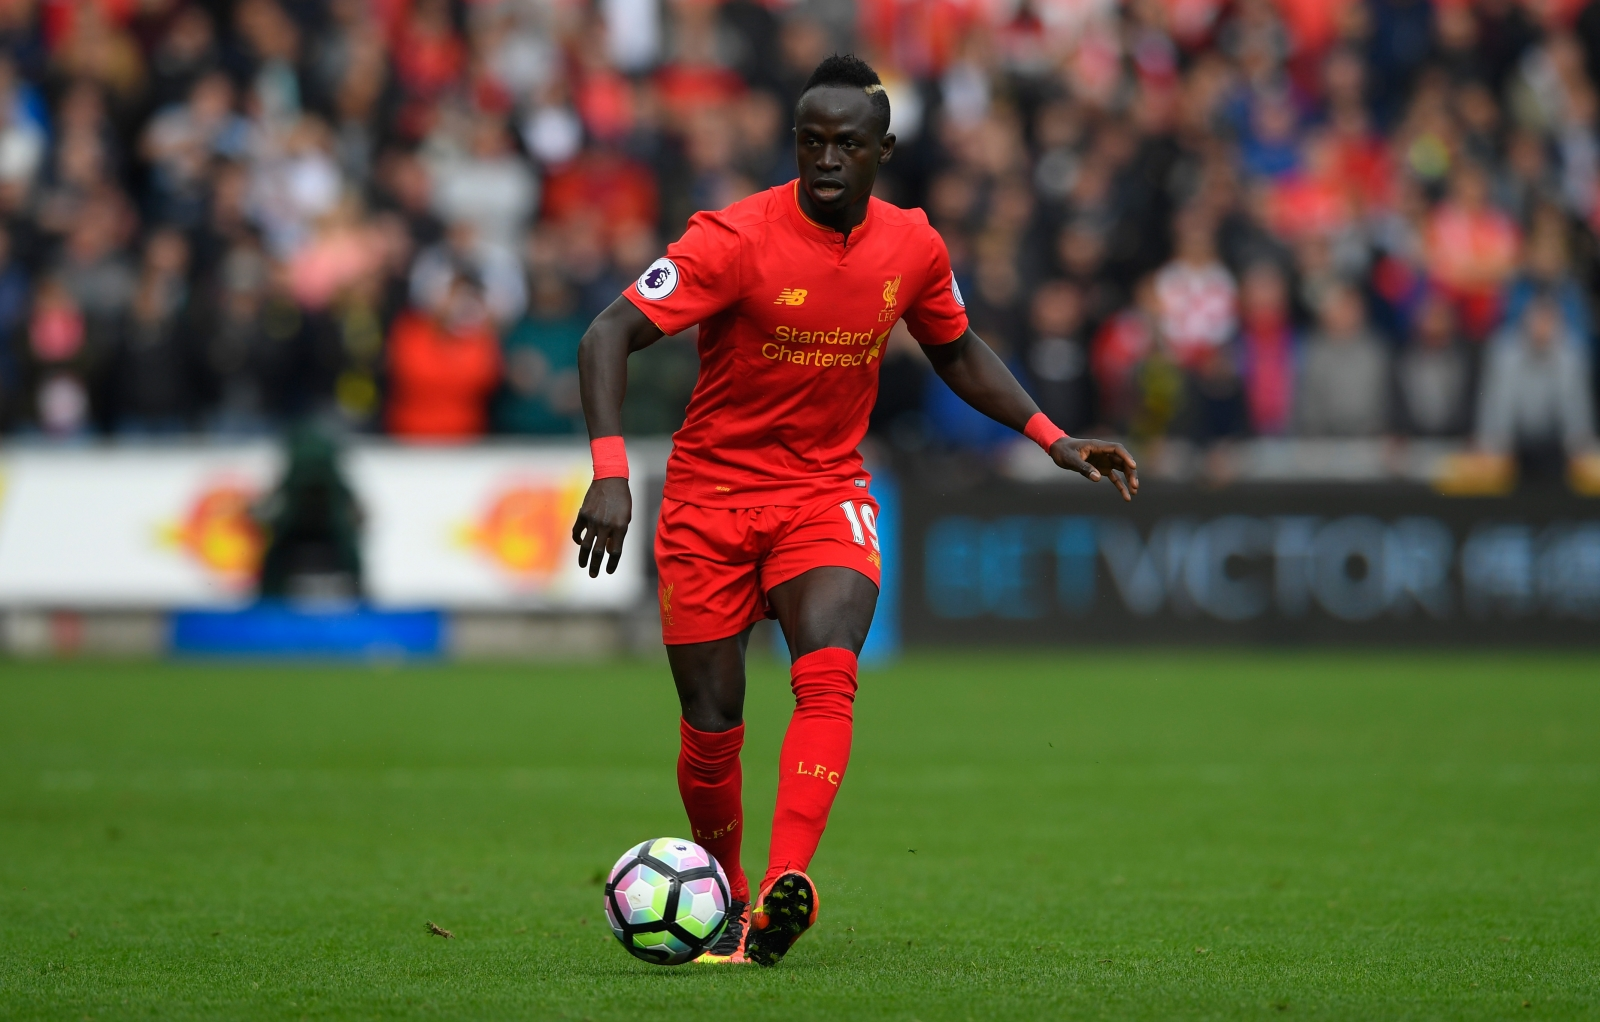 ronald koeman with Liverpool Forward Sadio Mane Reveals Why He Rejected Manchester United 1586730 on Liverpool Forward Sadio Mane Reveals Why He Rejected Manchester United 1586730 further Nederlands Elftal also Jordan Pickford Everton Sunderland David Moyes Transfer News Rumours Gossip in addition Liverpool Fc Goalkeeper Simon Mignolet 9502271 further Moussa Sissoko Tottenham Reject Everton Transfer Premier League Newcastle.